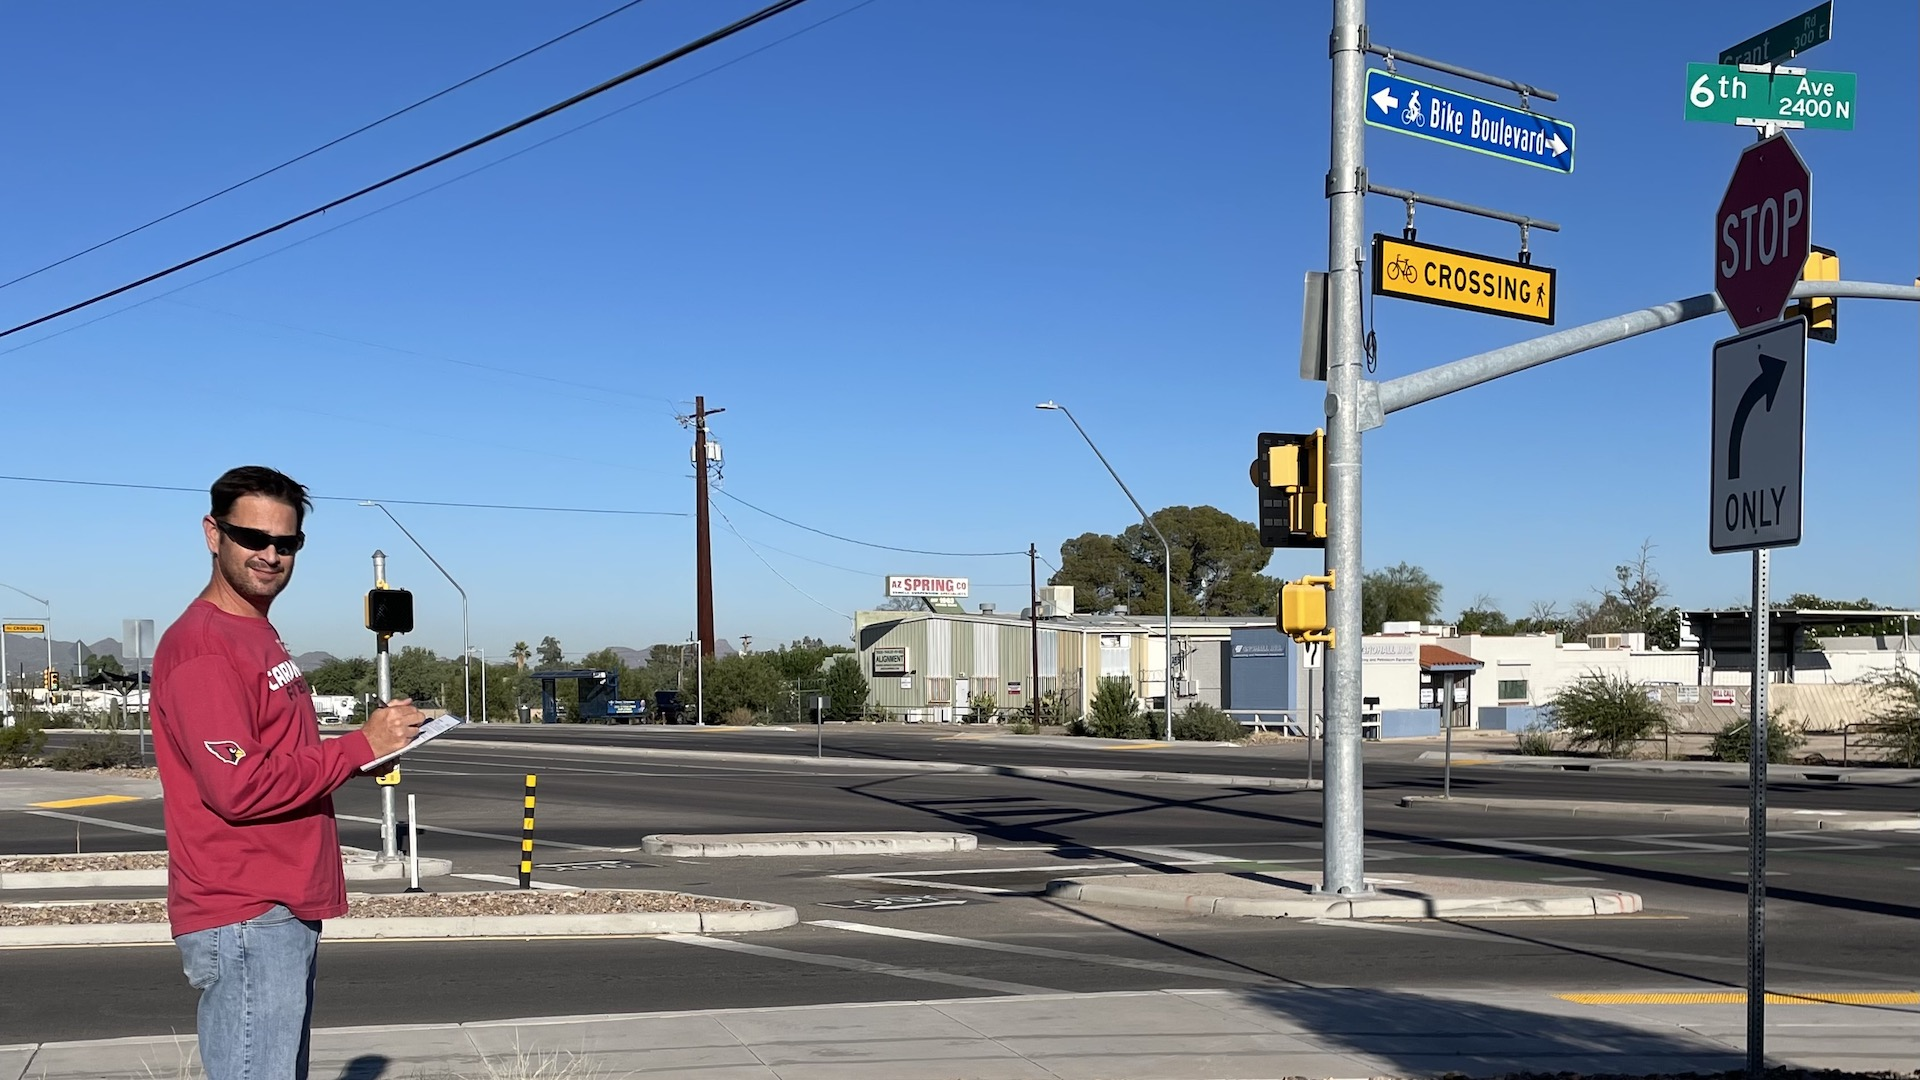 Pima Association of Governments Senior Transportation Planner David Mitchell counts pedestrians and bicycles at the corner of Grant Road and 6th Ave on Monday, October 11th, 2021, as part of an annual data collection effort.